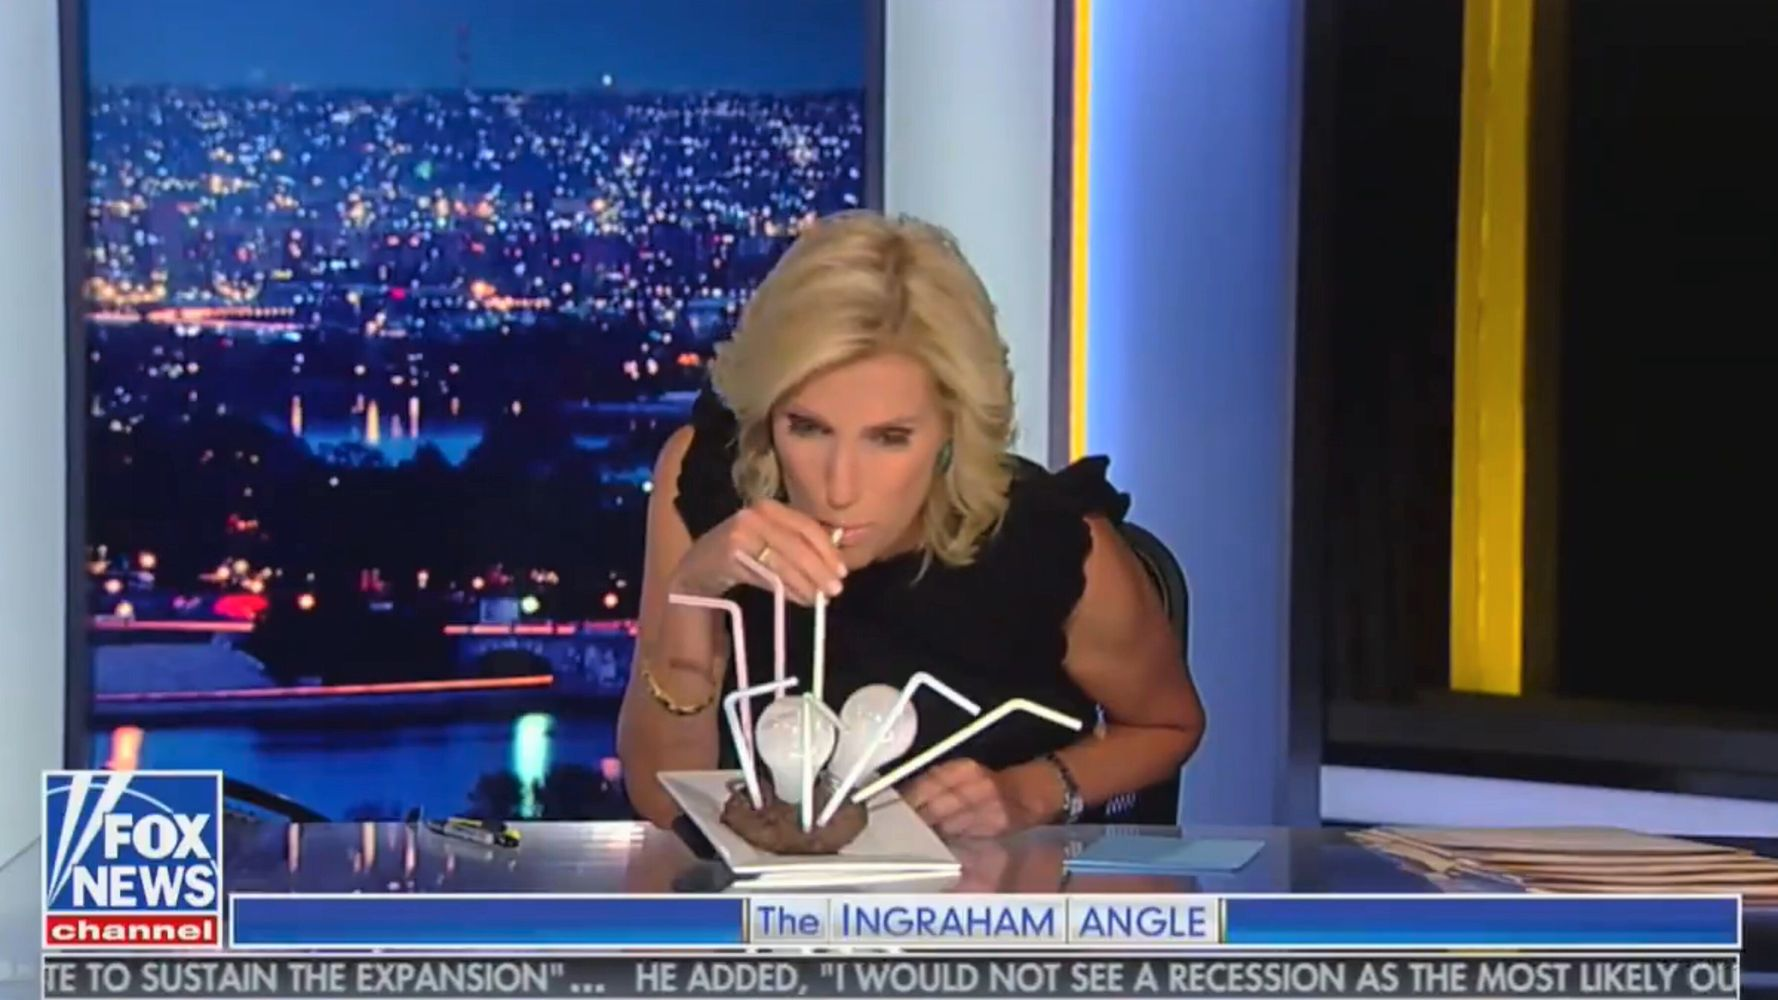 Fox News Anchor Tries To Drink Light Bulb-Stuffed Steak To